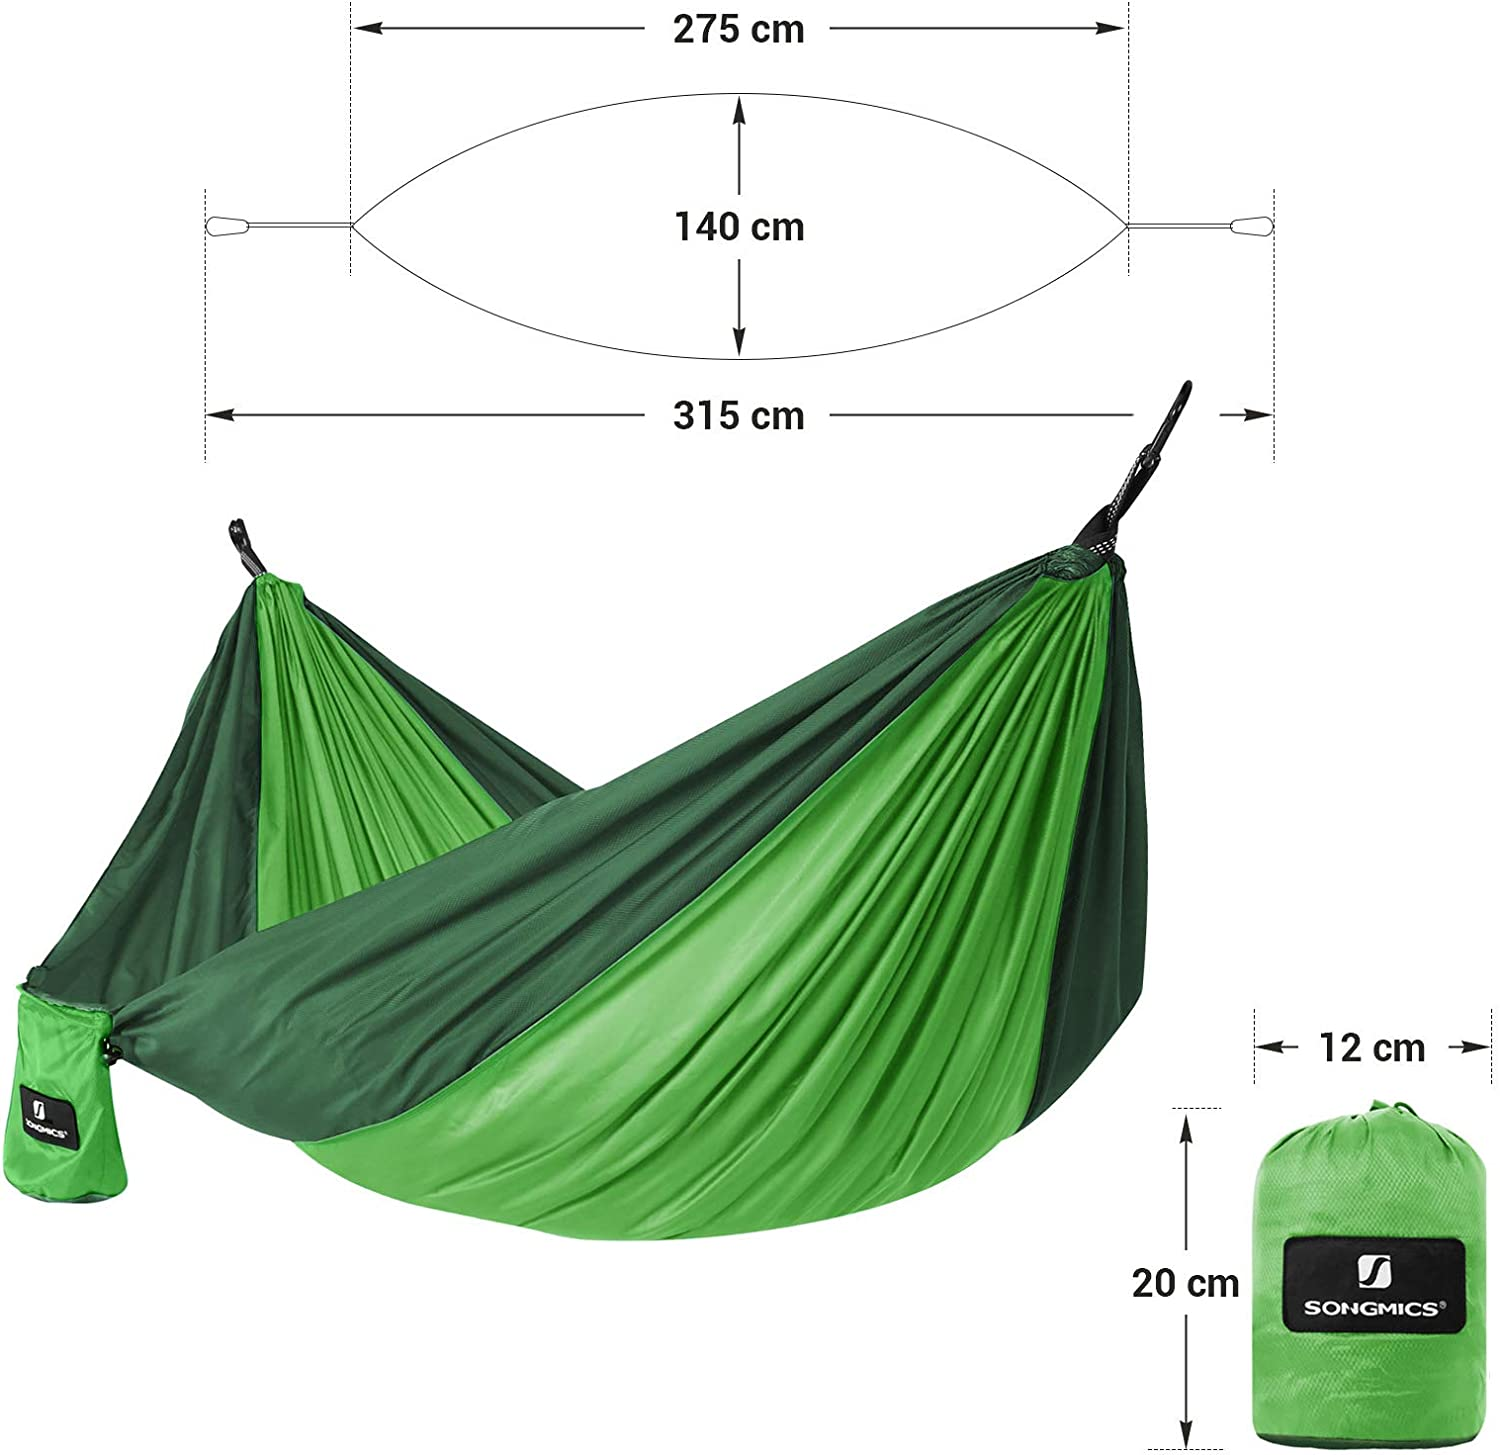 Breathable 300 kg Load Capacity 275 x 140 cm SONGMICS Camping Hammock Lightweight T/ÜV Tested with Multi-Loop Straps and Carabiners Light Green and Dark Green GDC14GN Quick Drying